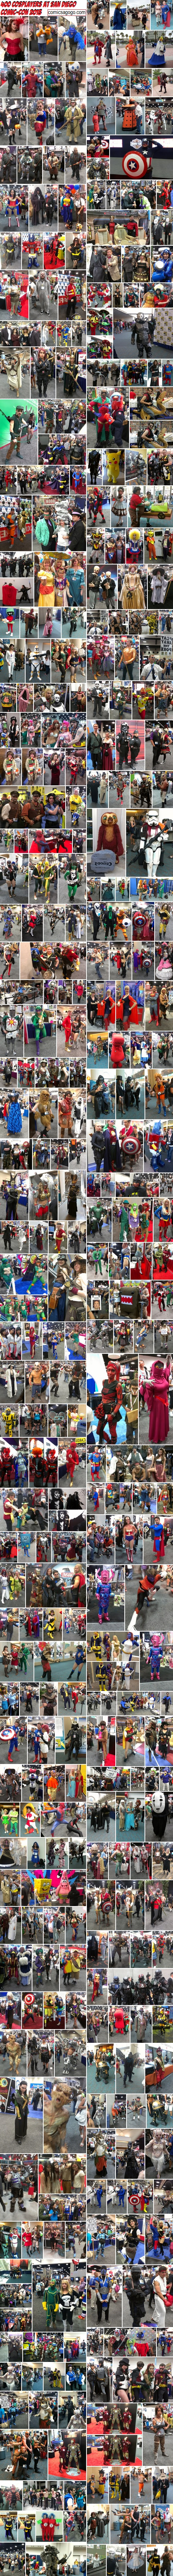 400 Cosplayers at San Diego Comic-Con 2013